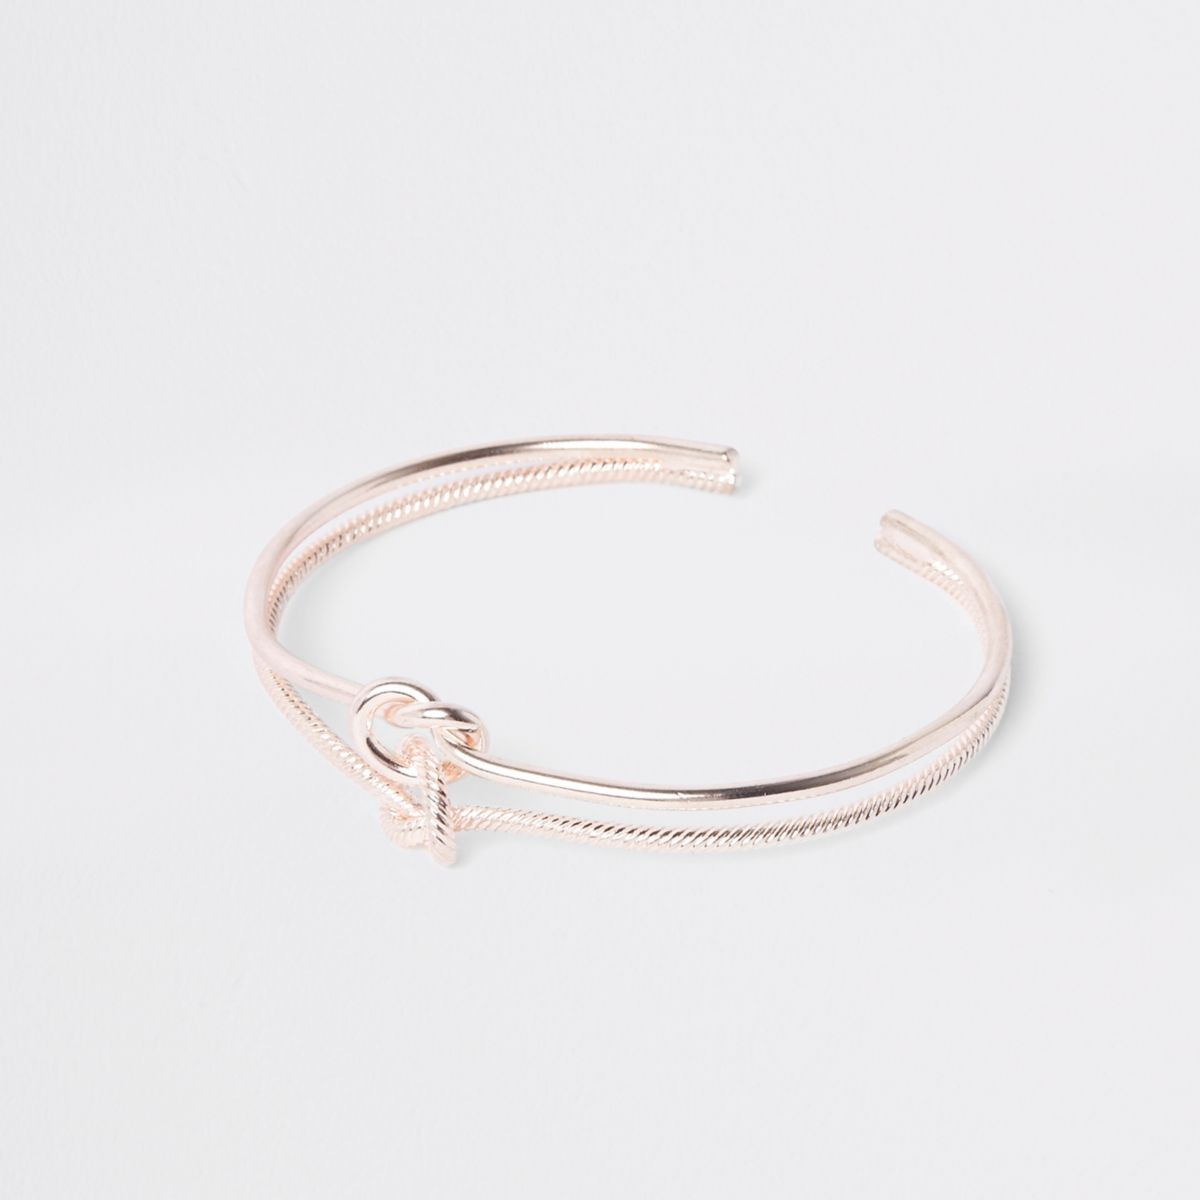 Rose gold double knot cuff bracelet